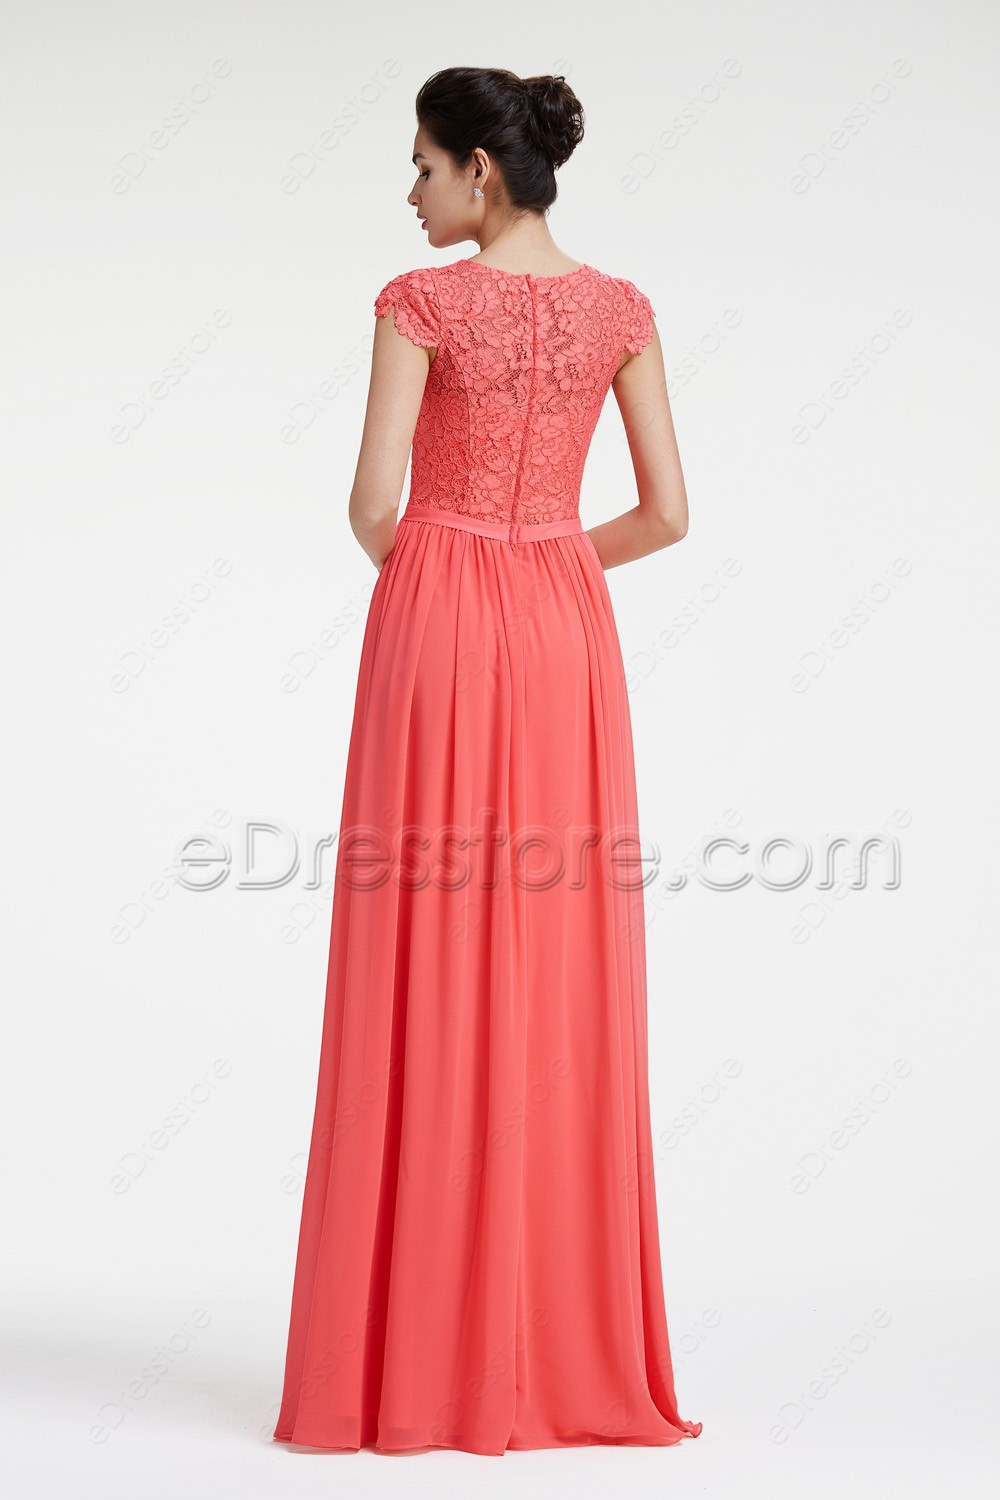 Modest bridesmaid dresses with sleeves uk wedding dresses in jax modest bridesmaid dresses with sleeves uk 22 ombrellifo Choice Image